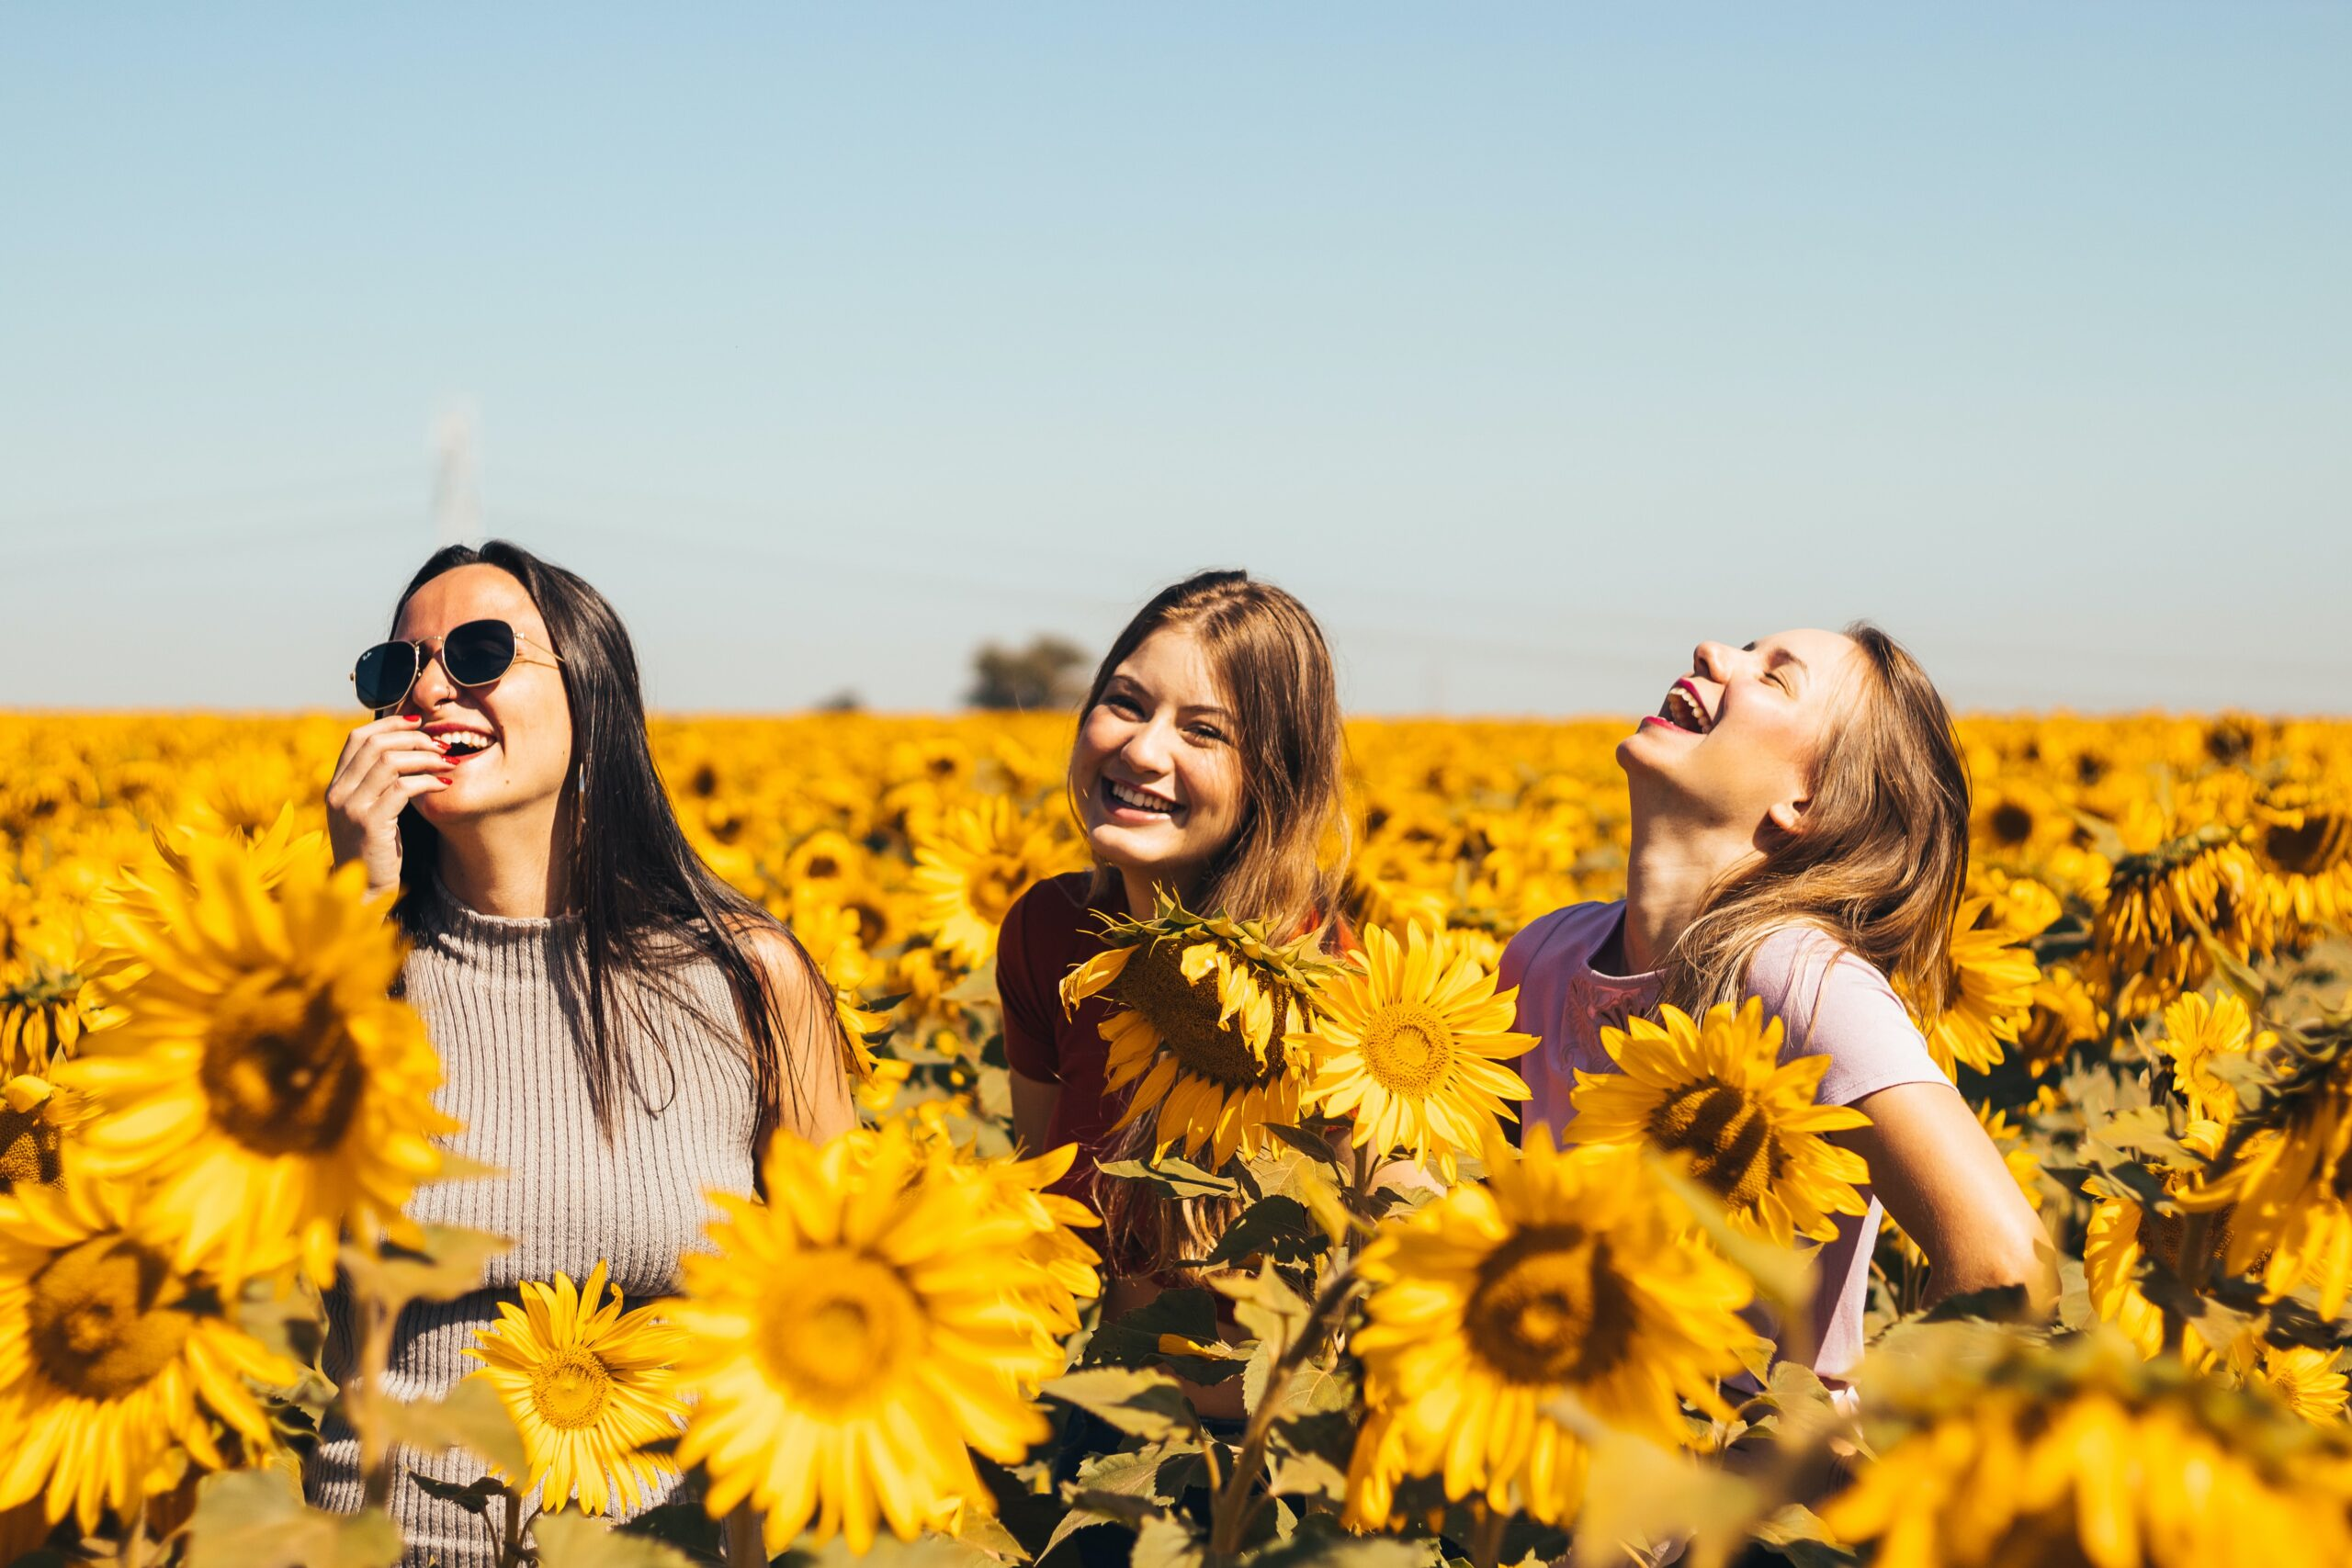 Friends with essential oil in sunflowers.